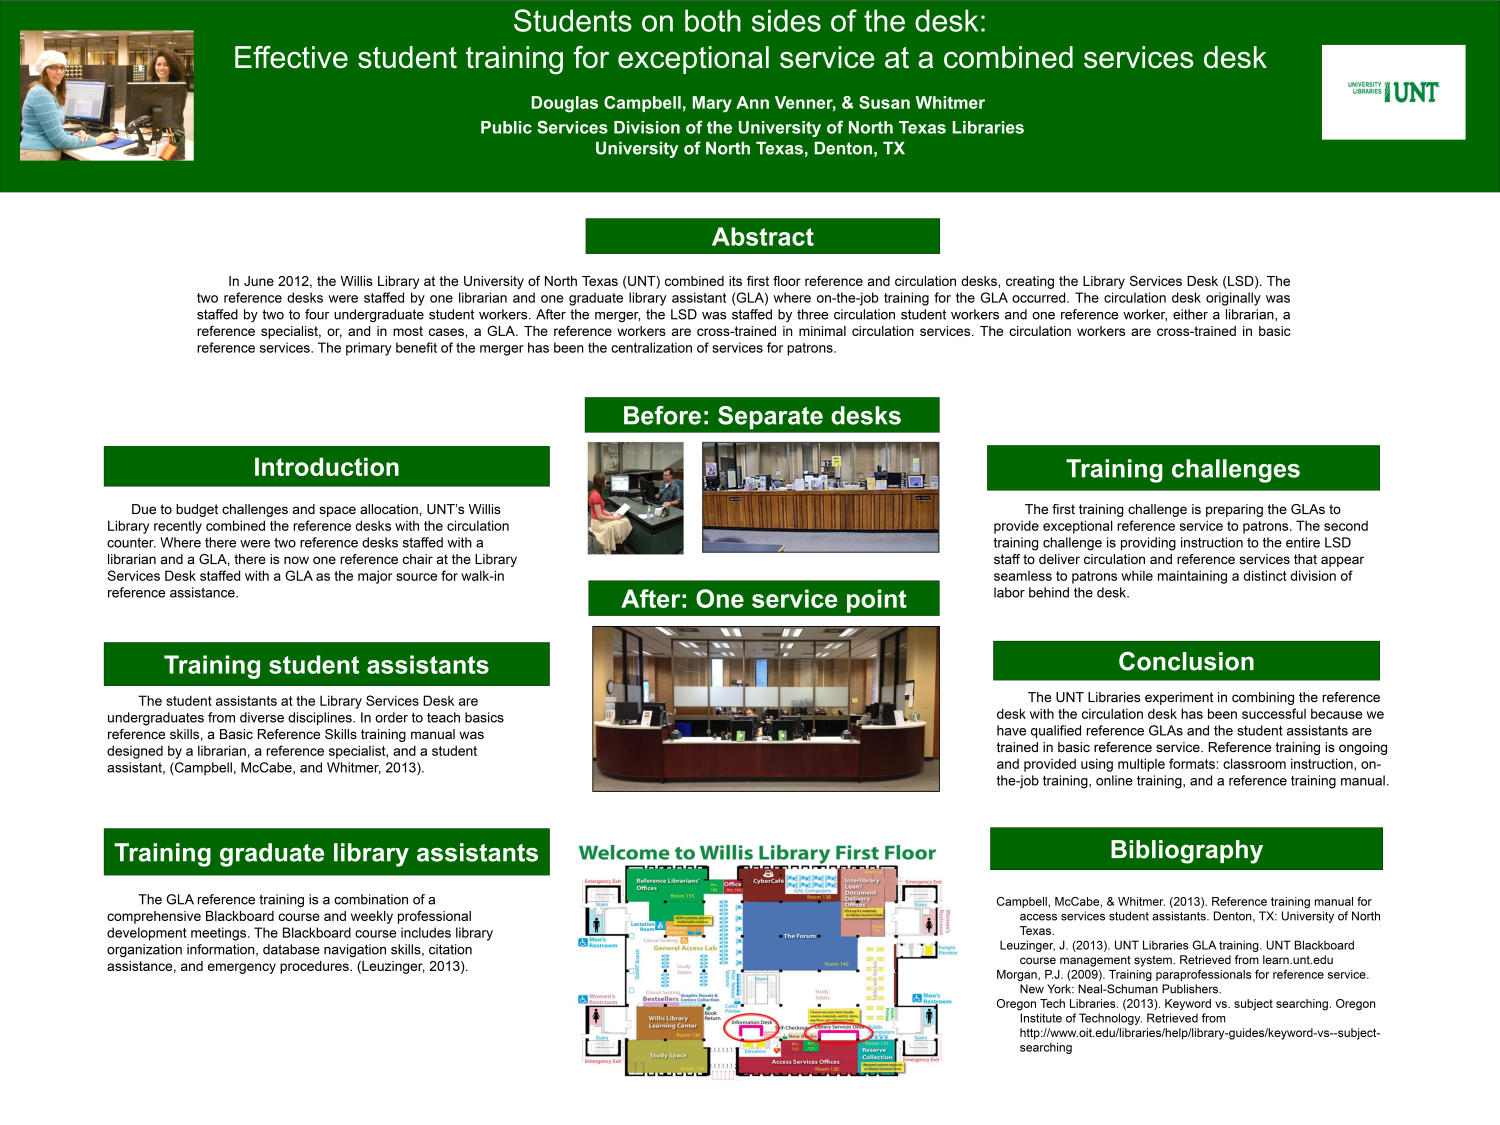 Students On Both Sides Of The Desk Effective Student Training For Exceptional Service At A Combined Services Poster Digital Library